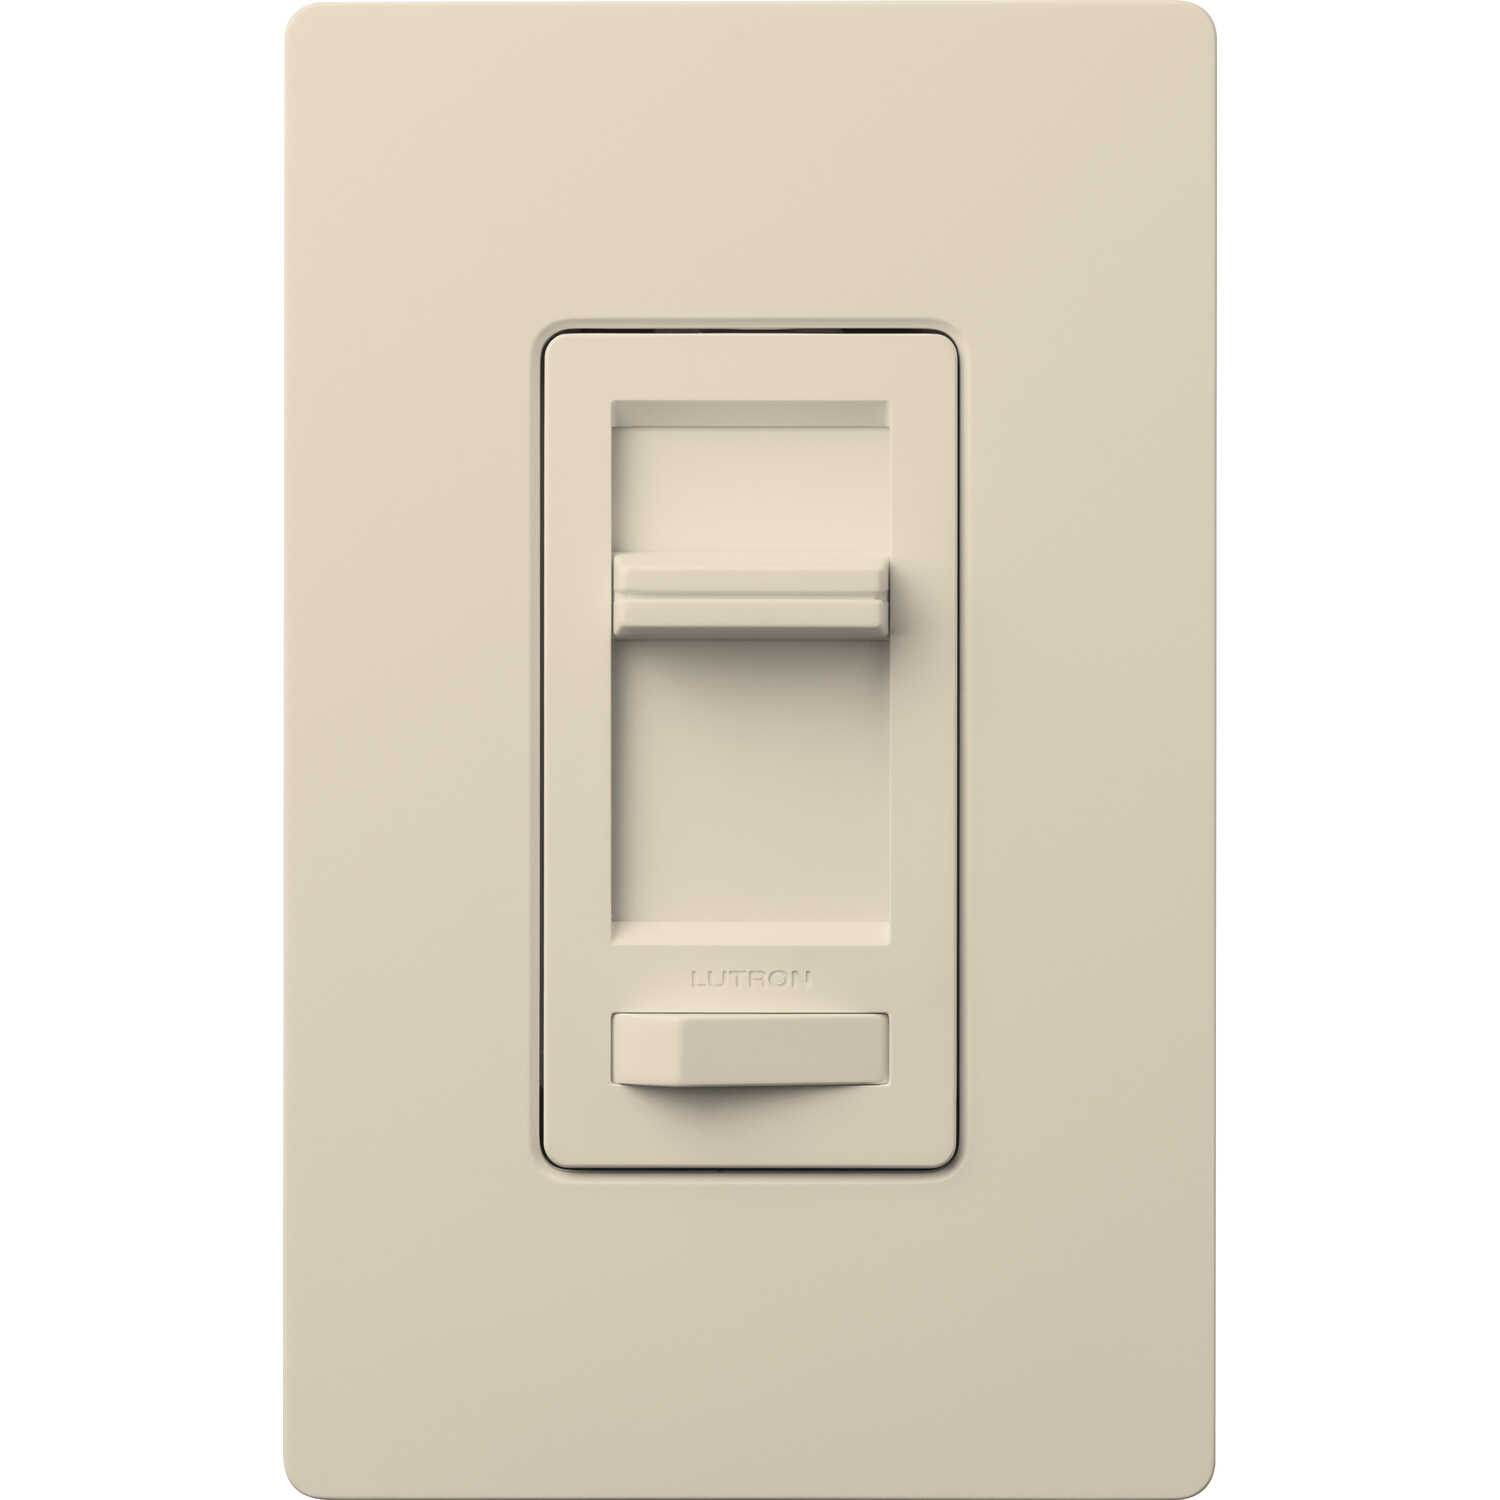 Lutron  Lumea  Light Almond  150W for CFL and LED / 600W for incandescent and halogen watts 3-Way  D